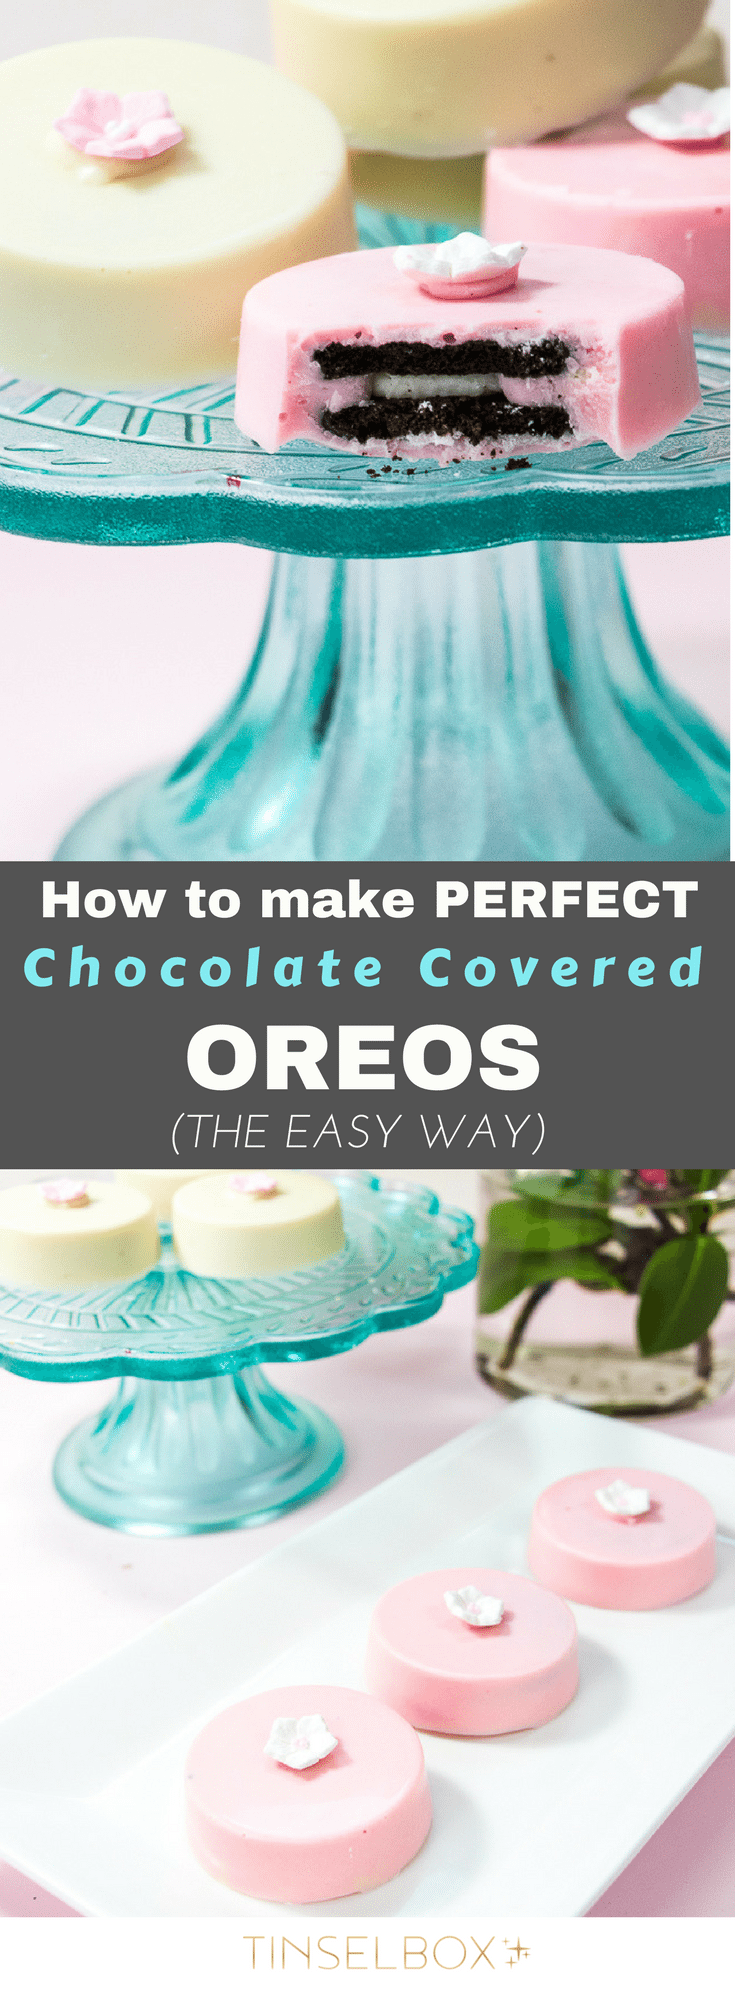 You will obsess over these chocolate covered oreos, I promise you! They have the right amount of crunch inside with silky REAL chocolate outside. This is the only way to make these. Easy and delicious oreo cookies. No bake! #cookies #oreos #nobake #recipe